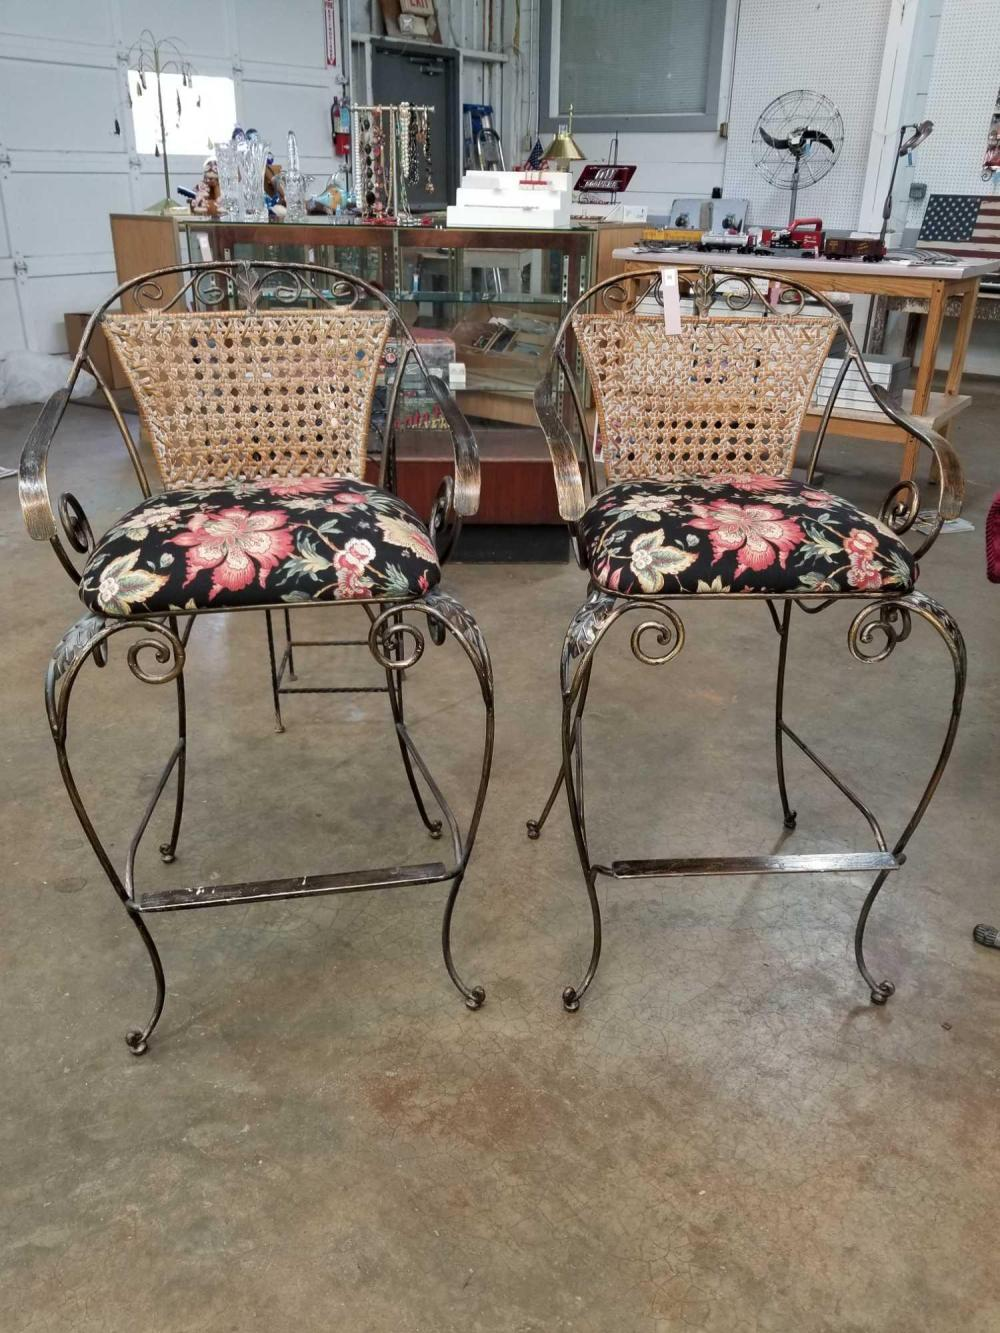 MODERN IRON & WICKER BAR CHAIRS W/ UPHOLSTERED SEATS - 2 ITEMS